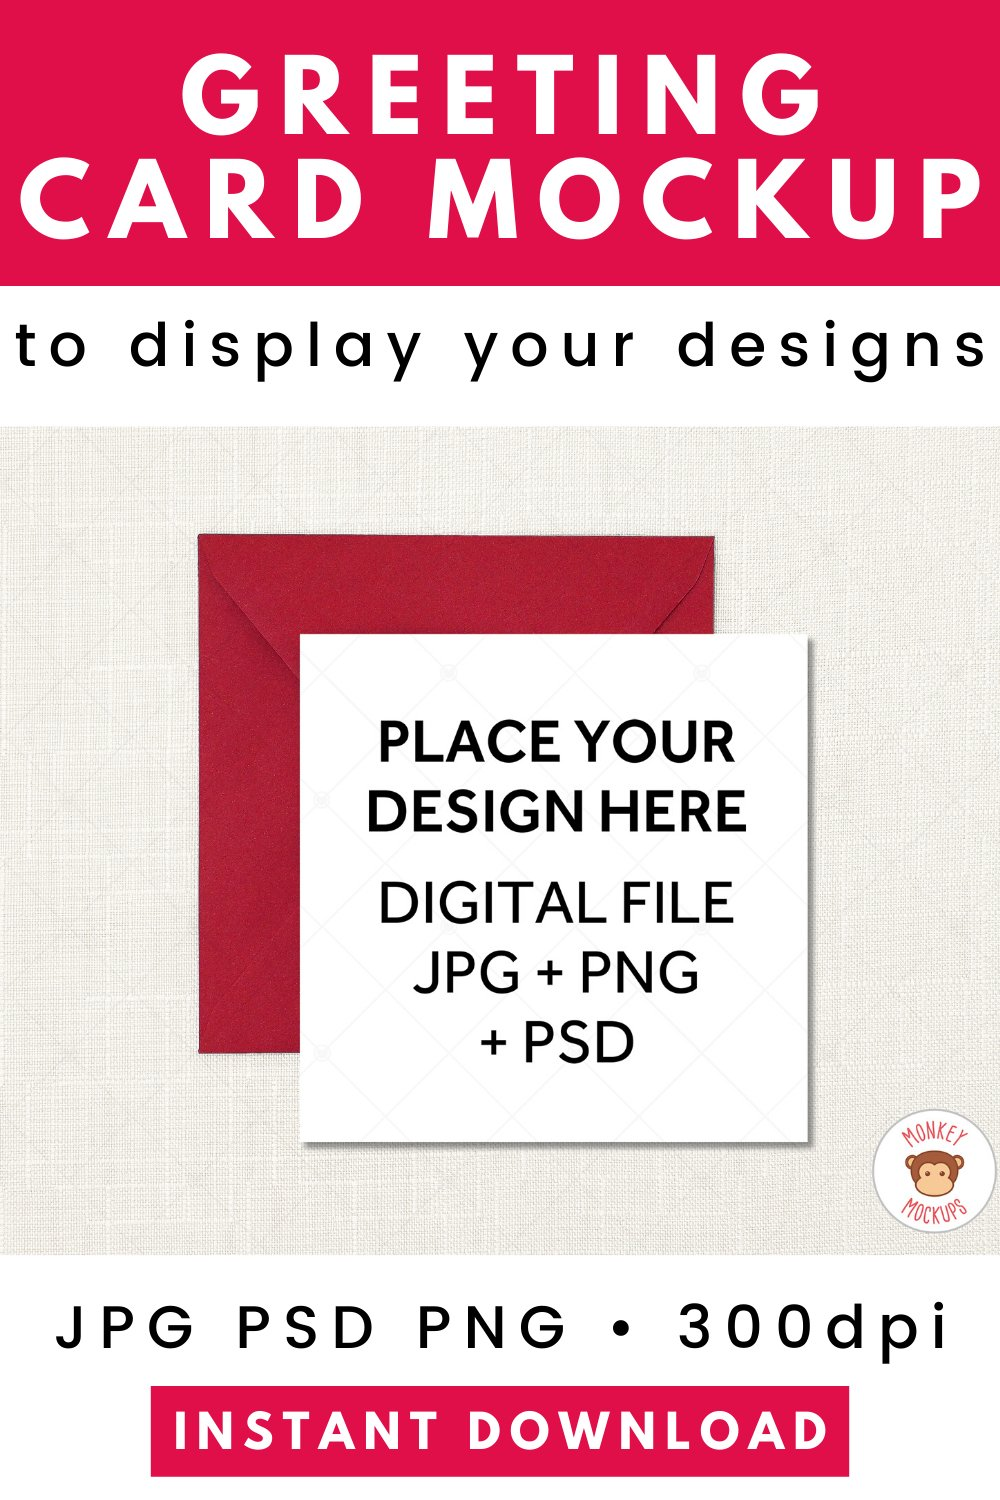 Square Card Mockup Red Envelope - JPG PNG PSD Smart Object example image 4